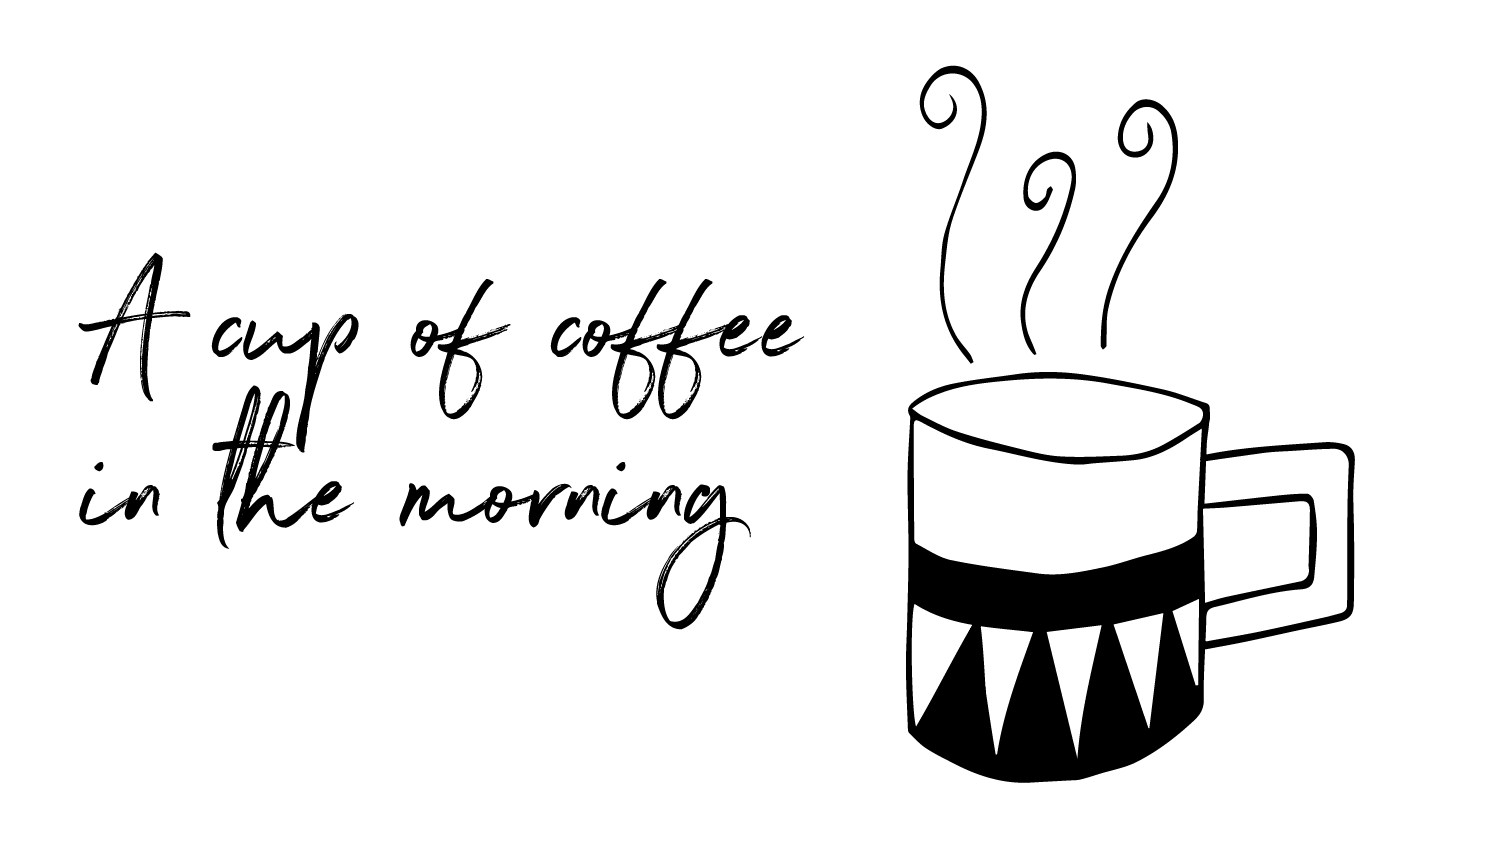 Coffee-05.png